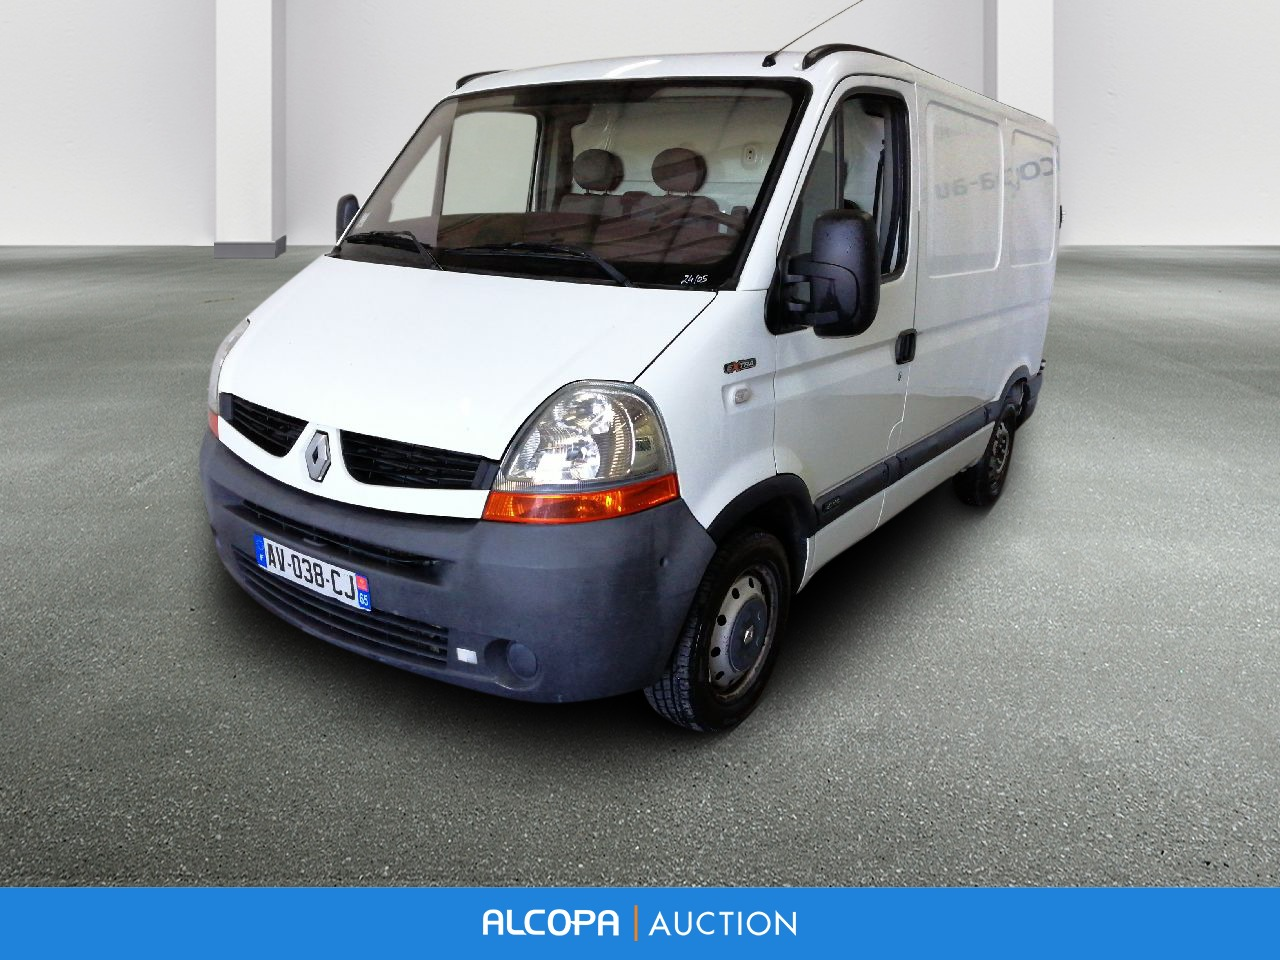 renault master fourgon master fgn l1h1 2 8t 2 5 dci 100 e4 extra alcopa auction. Black Bedroom Furniture Sets. Home Design Ideas